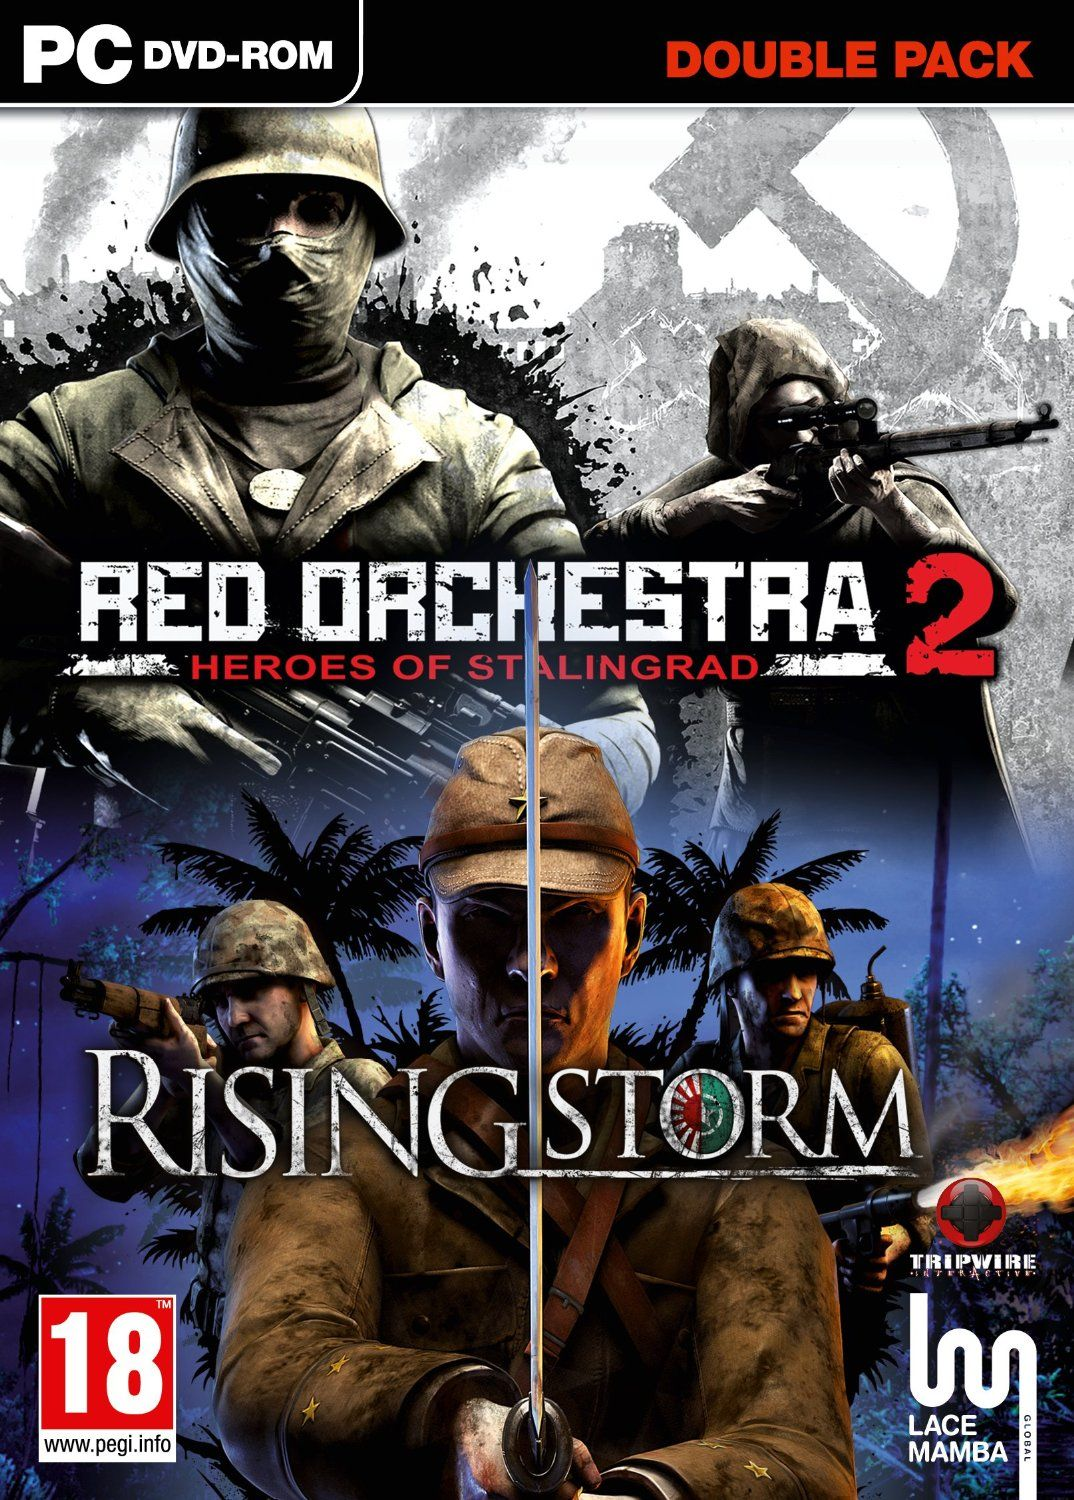 Red Orchestra 2 Rising Storm Free Download Rising storm